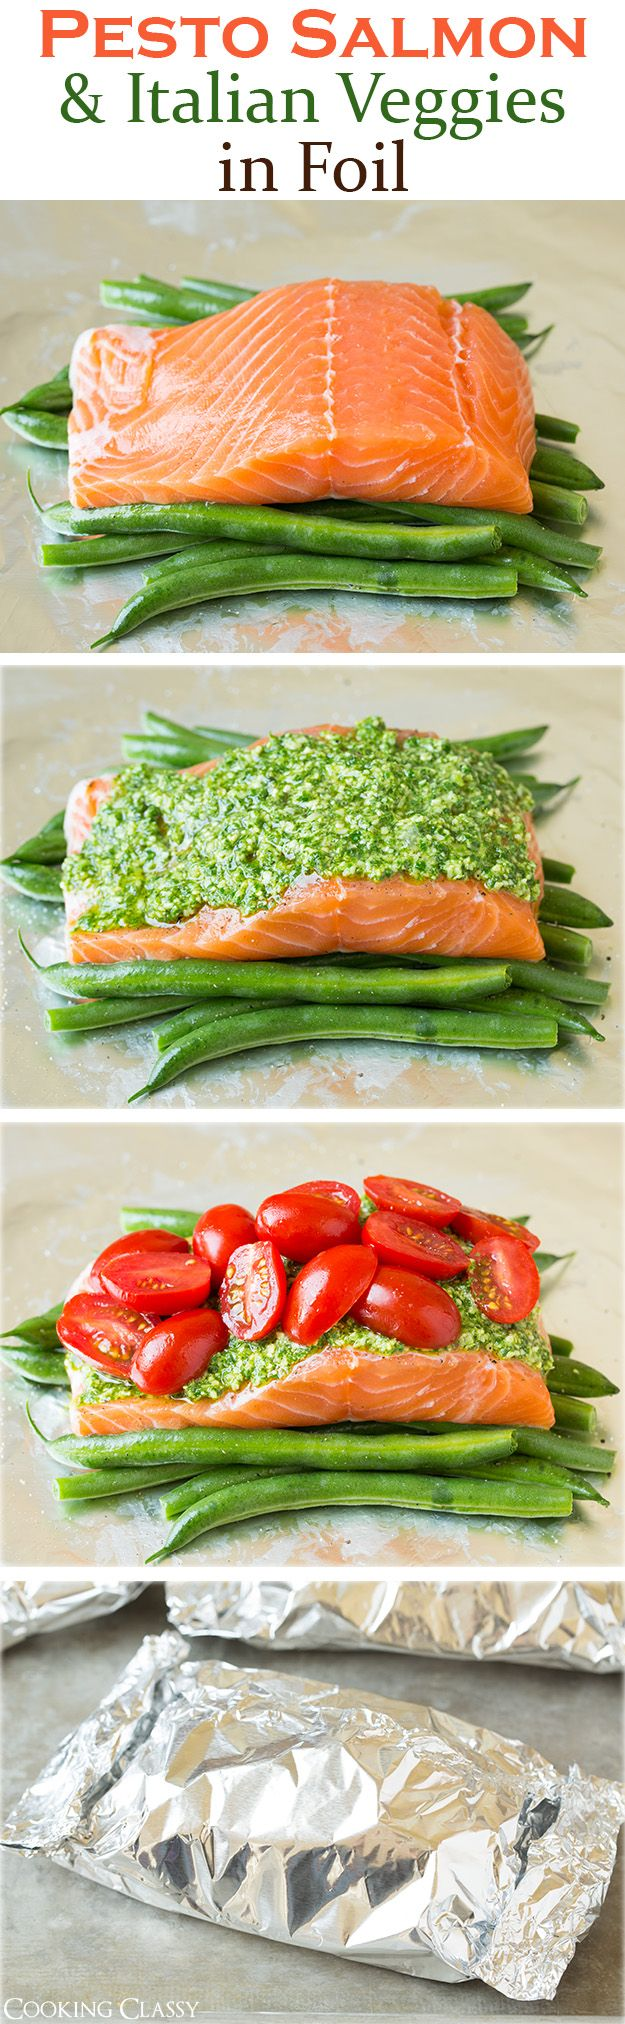 Pesto Salmon and Italian Veggies - this is an easy, flavorful dinner that is sure to please! So delicious!